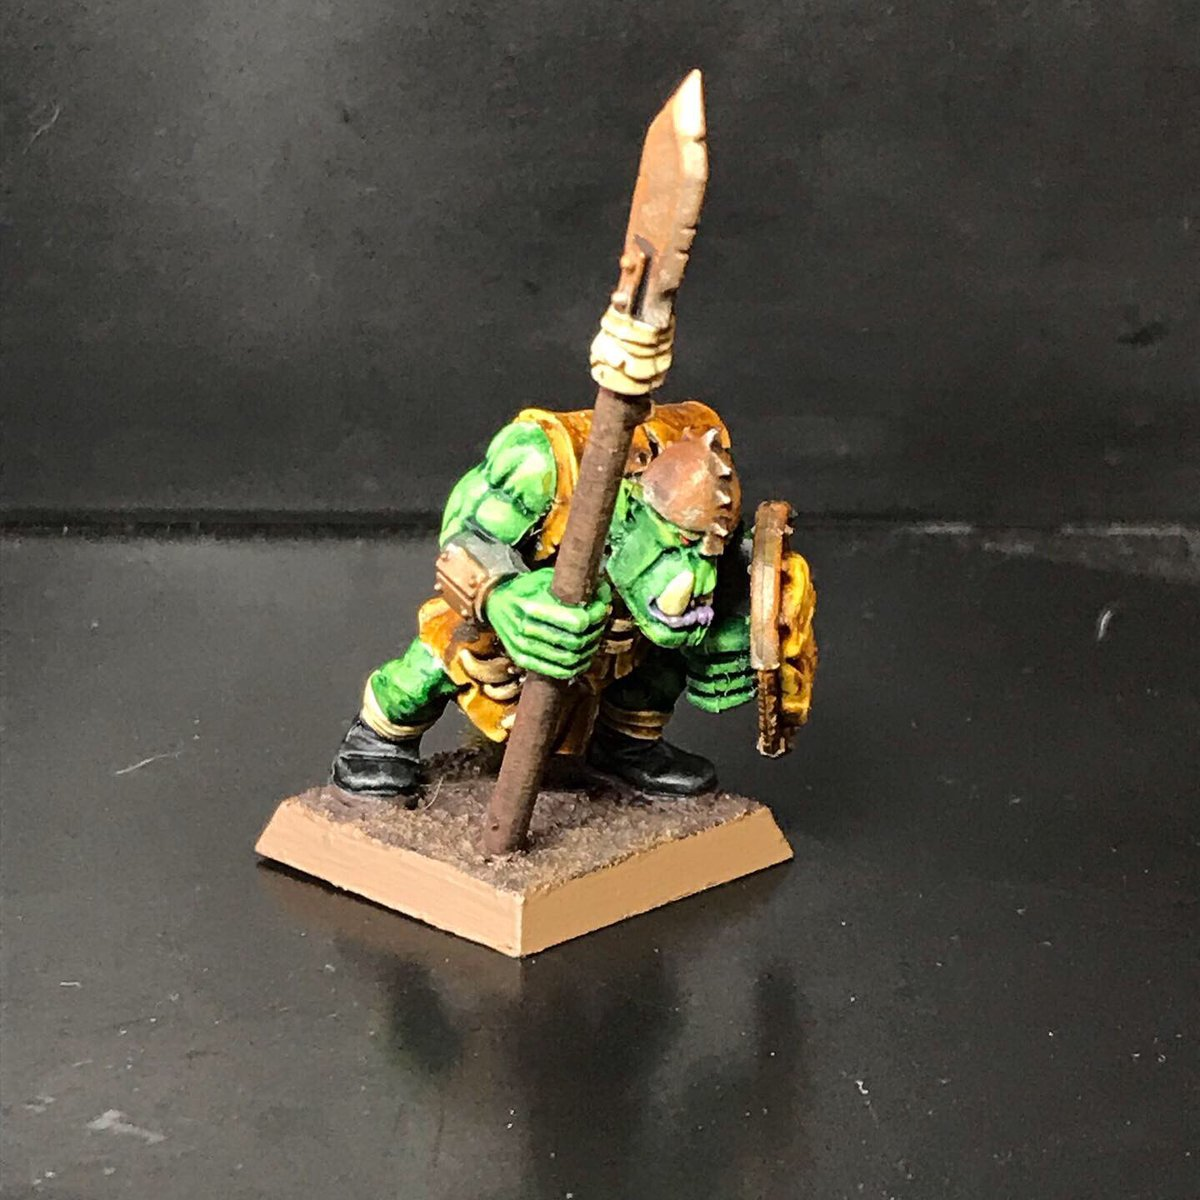 With the addition of contrast to my arsenal, my old orc and high elf armies may actually get the love they deserve. #orc #warhammer #wargaming #warmongers #painting #gamesworkshop #warhammerfantasybattles #miniatures #miniaturewargaming #paintingminiatures https://t.co/Uv3CviTm1p